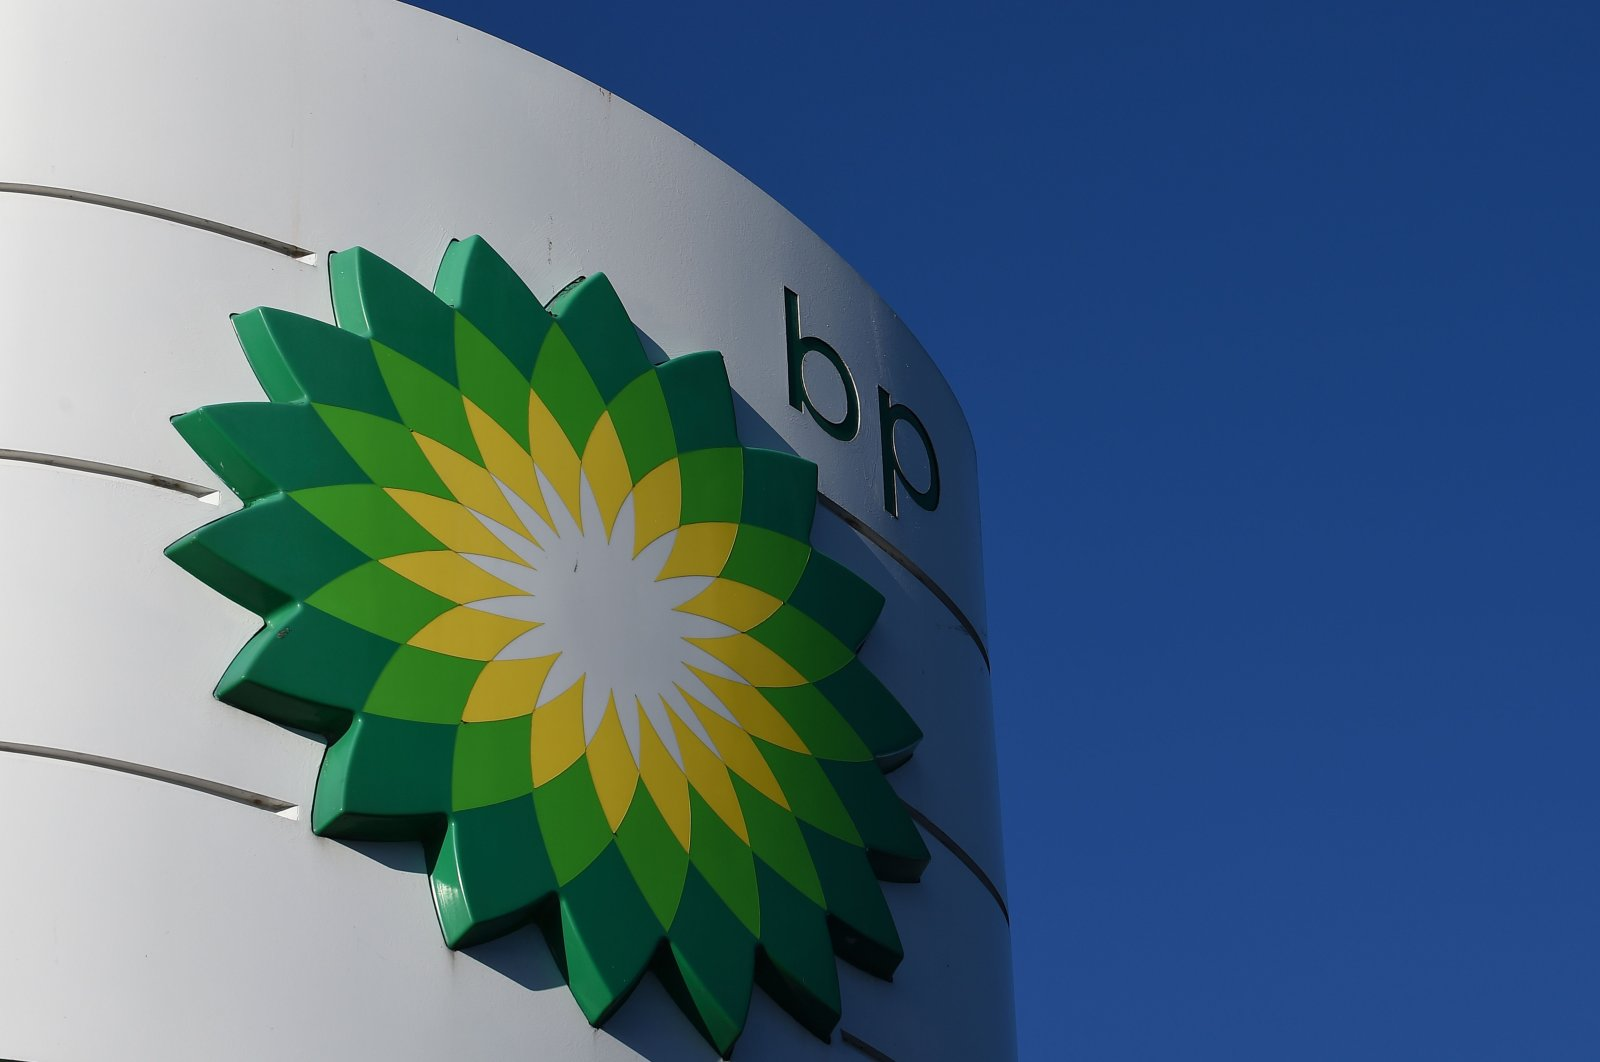 In this file photo taken Feb. 7, 2018, the BP logo is seen at a BP petrol station in Liverpool, England. (AFP Photo)